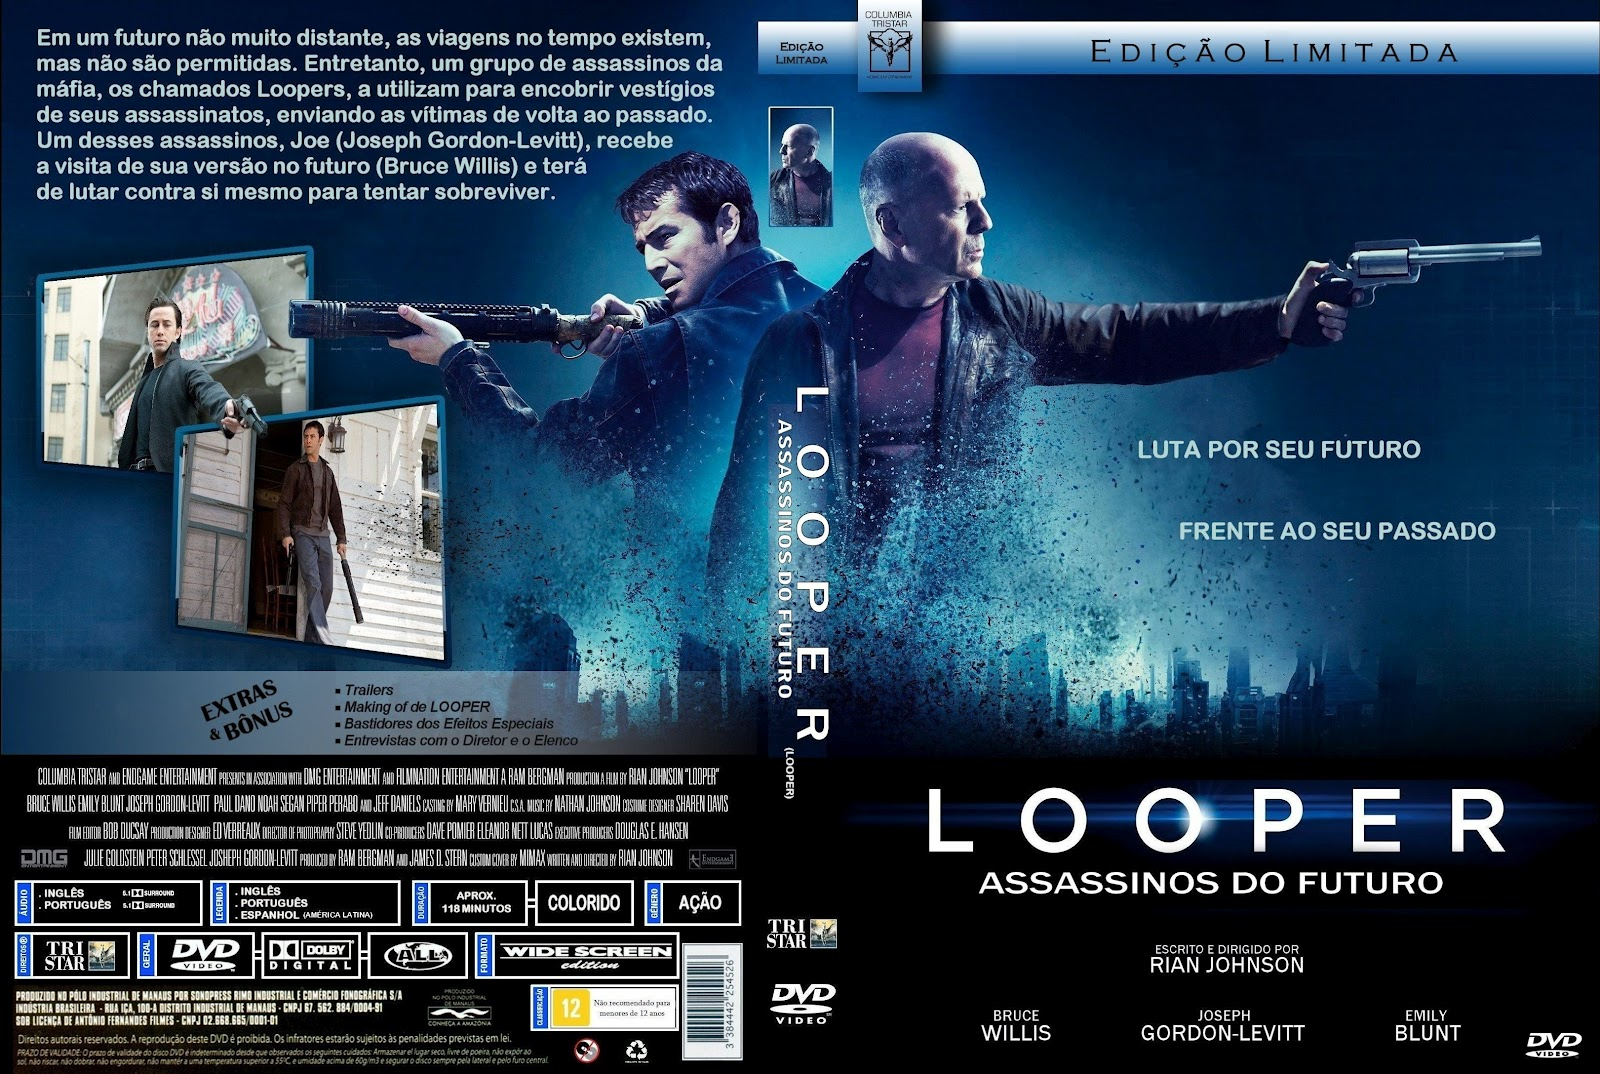 Looper - Assassinos do Futuro